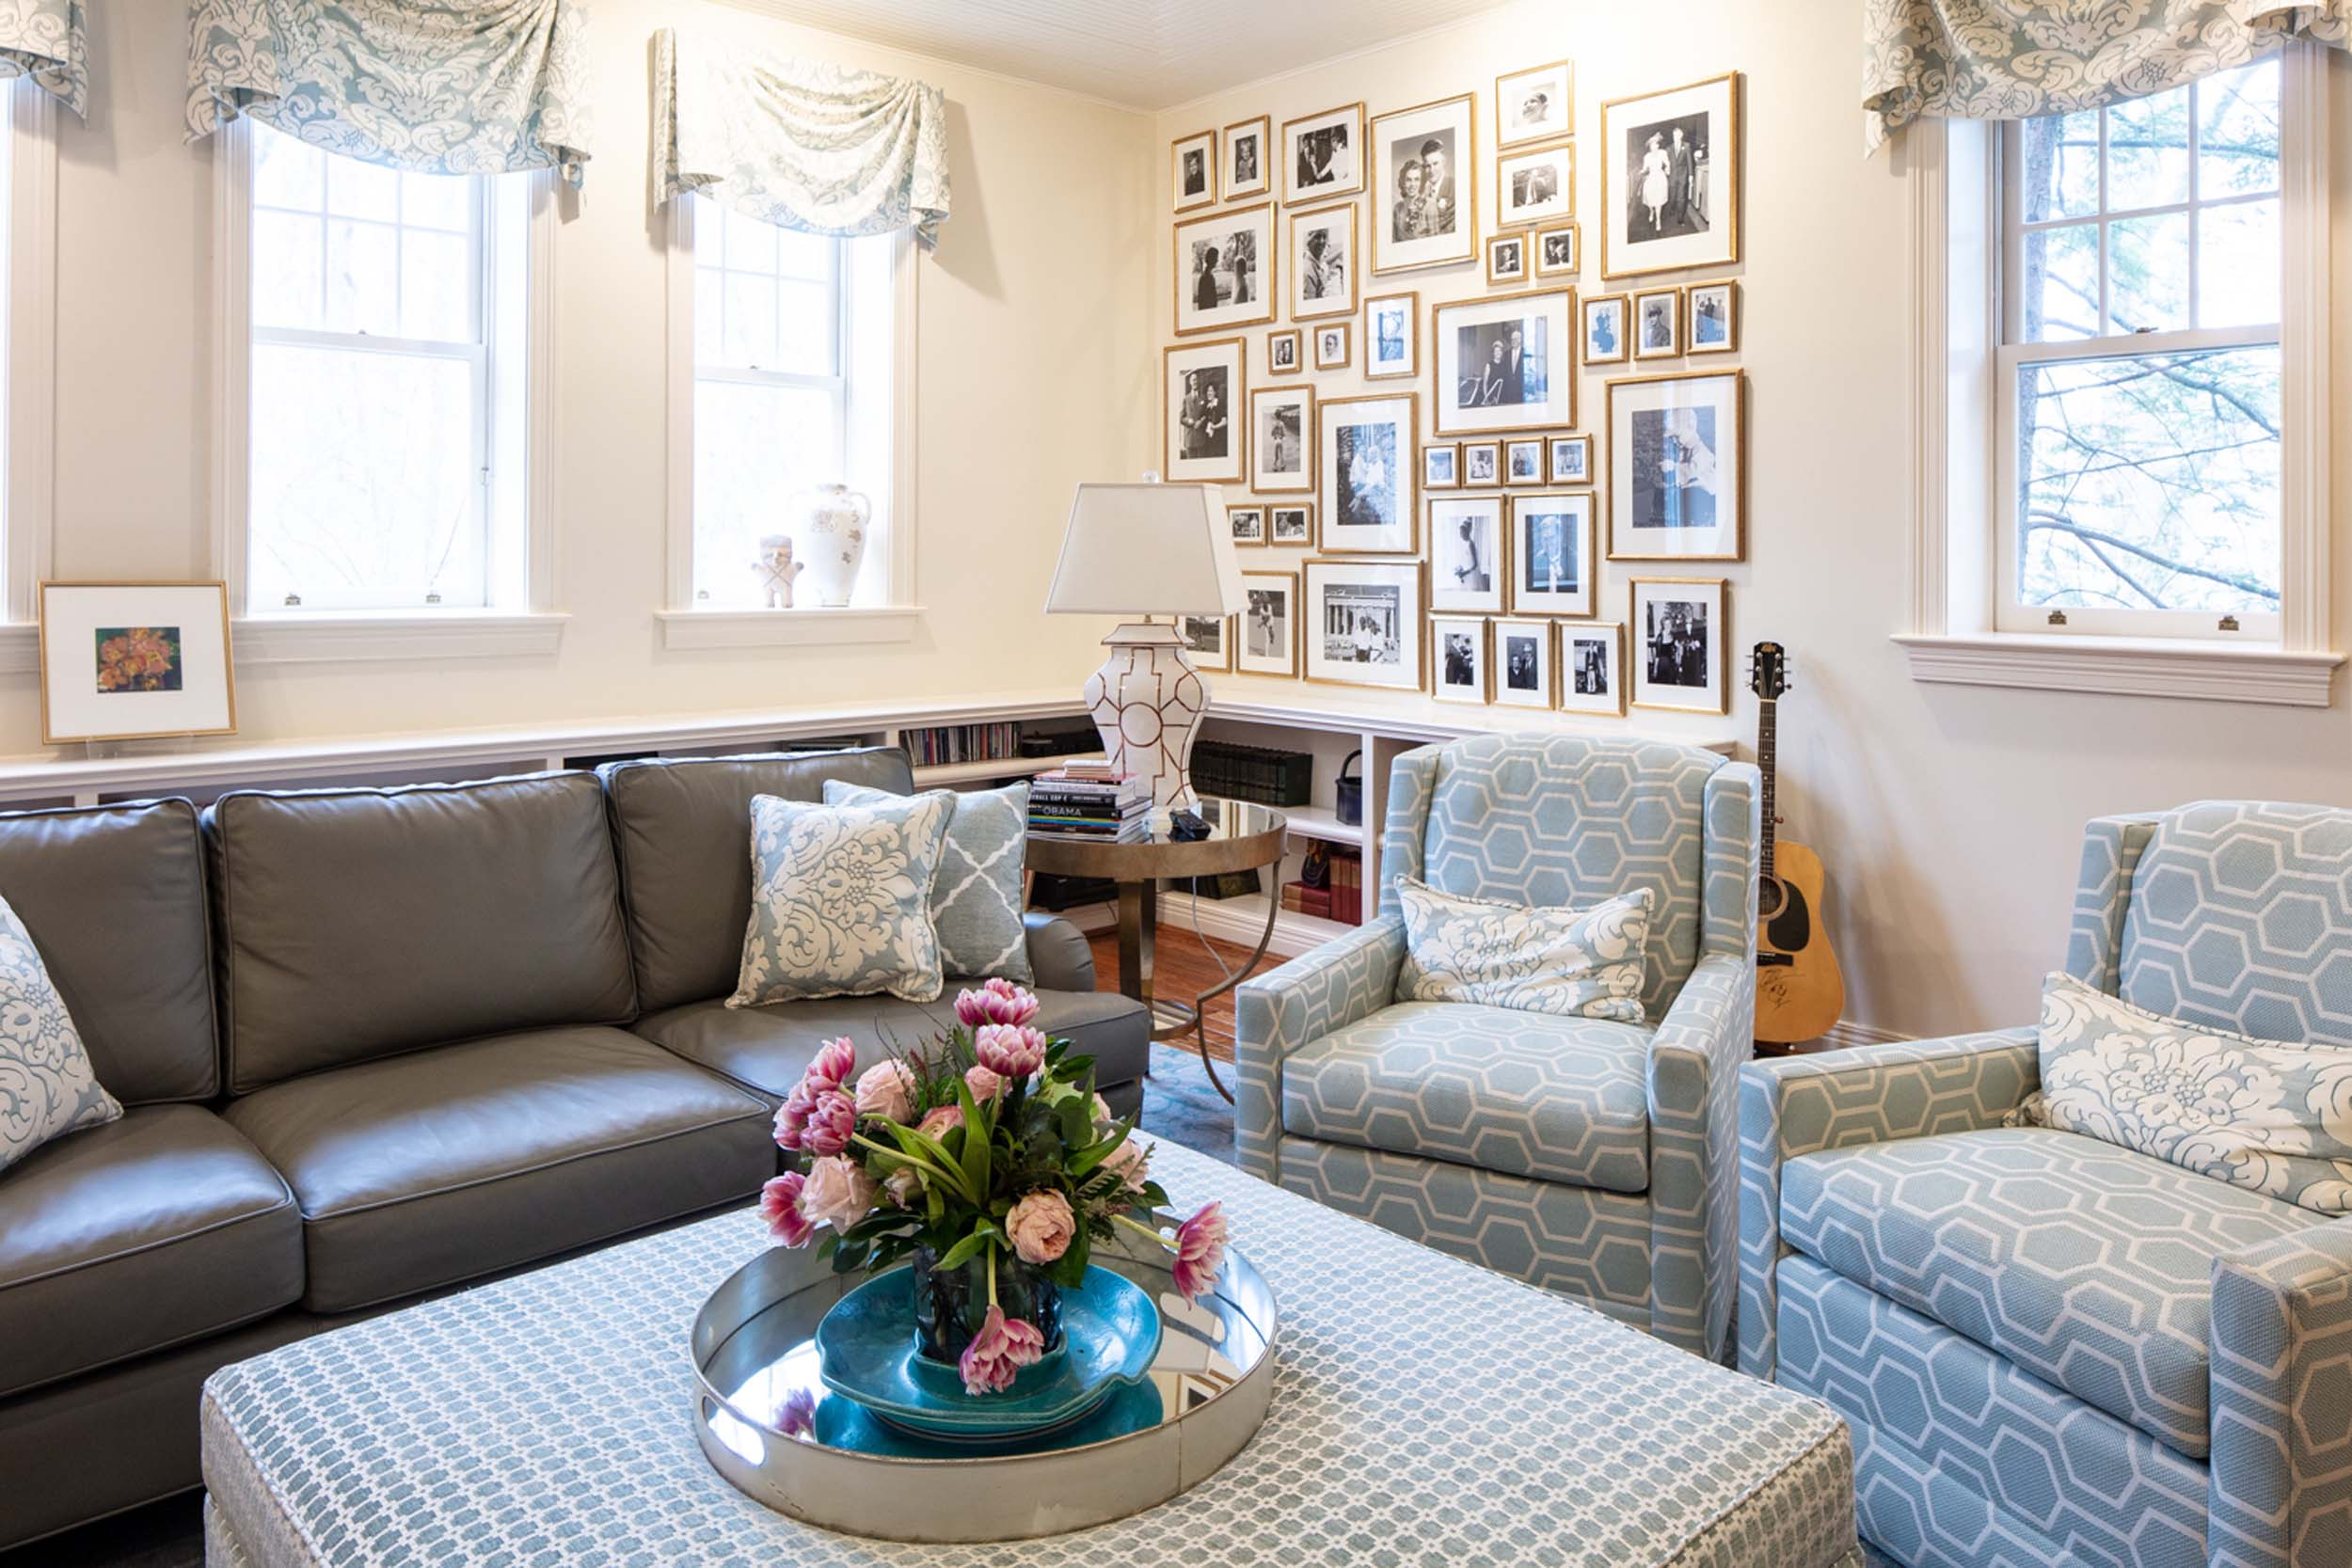 Living room with sofa, ottoman and a flowers and picture frames on the wall